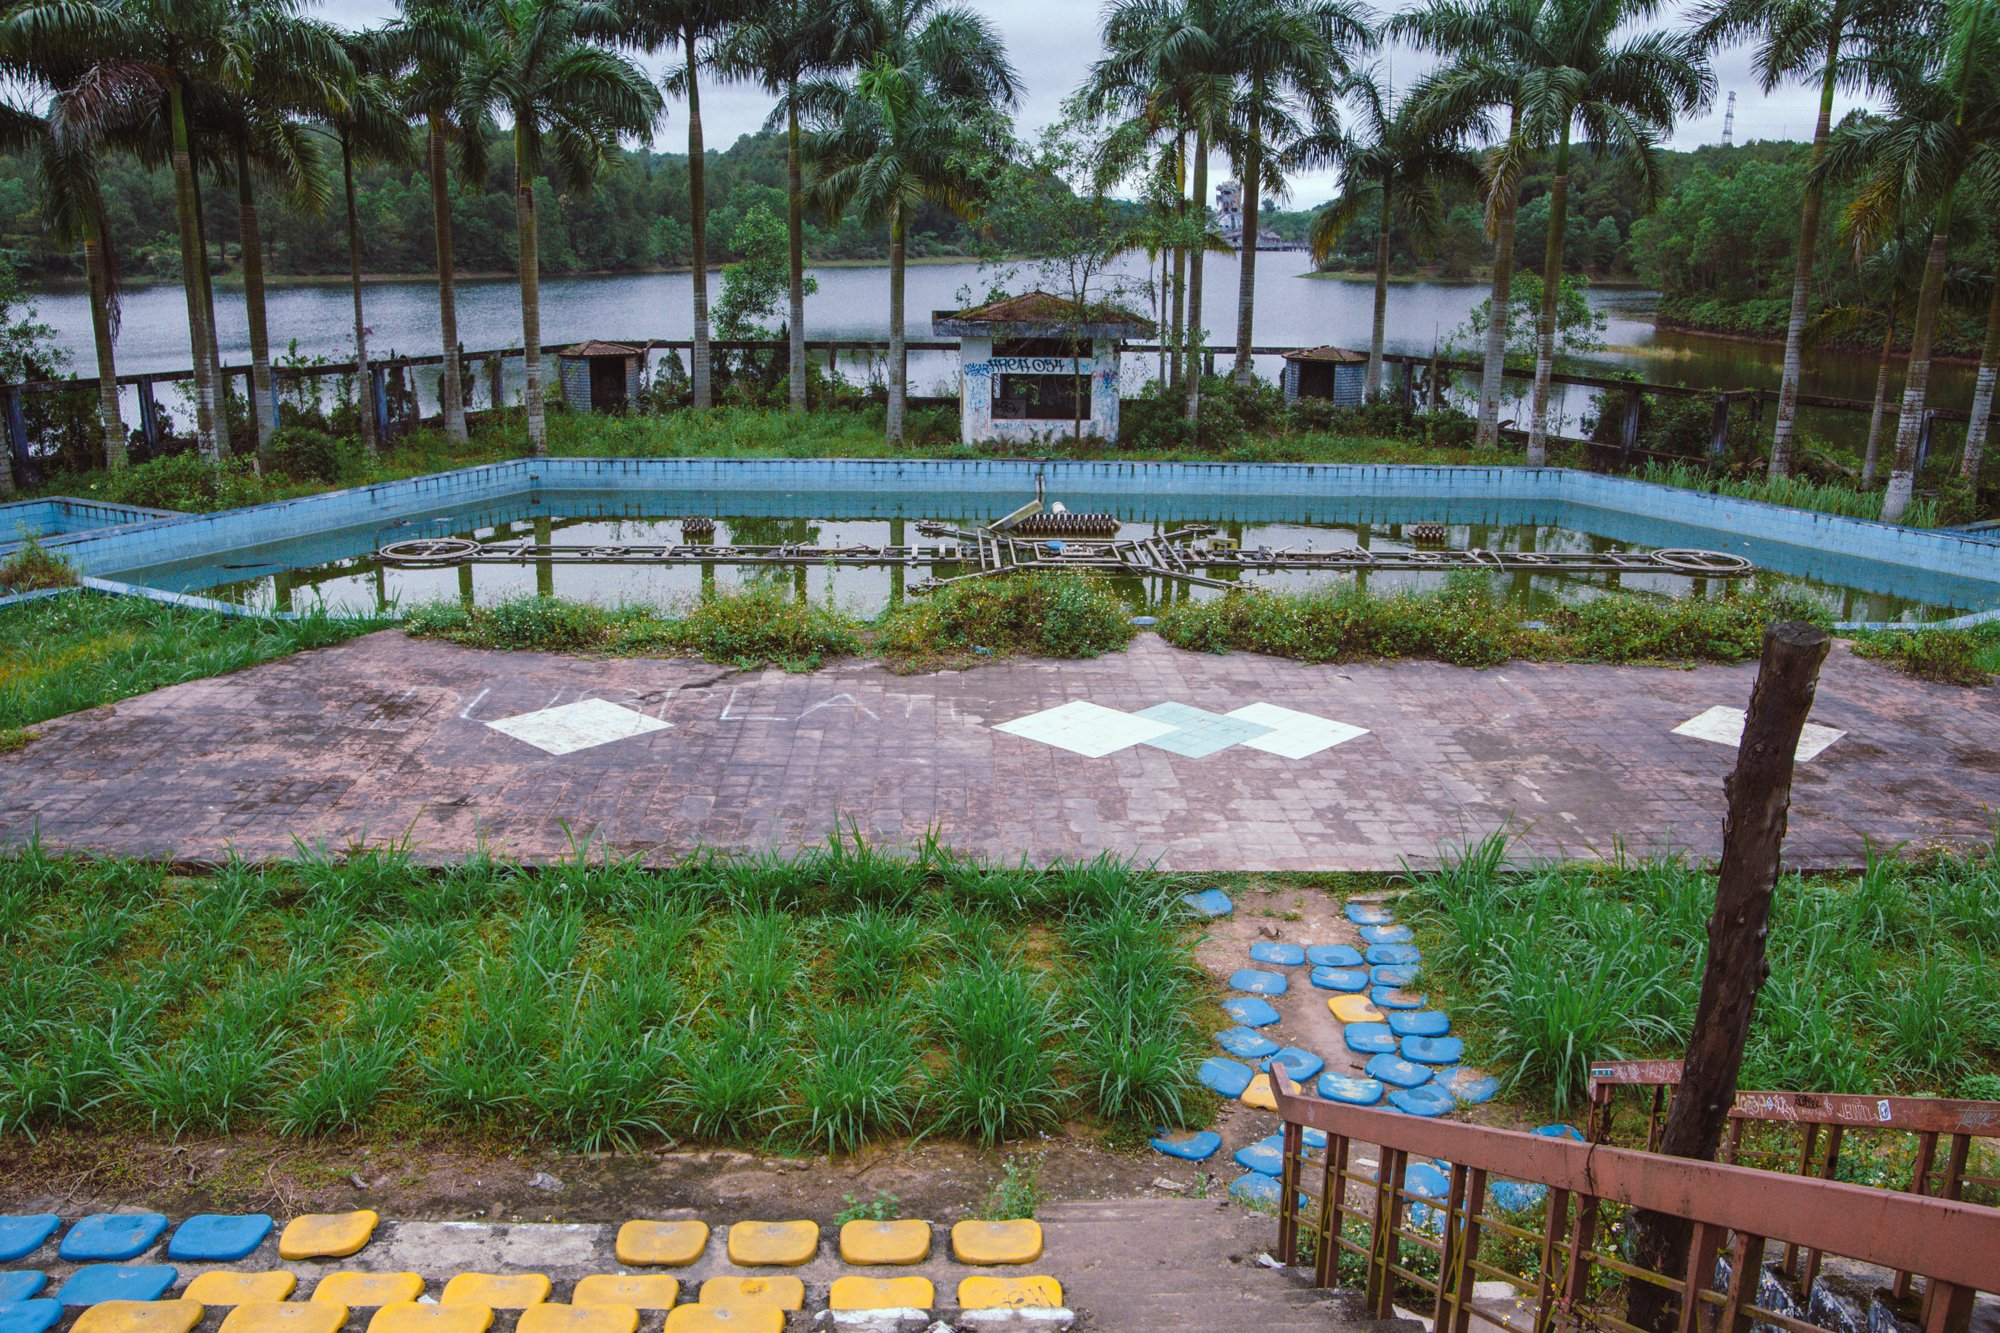 Stadium around a pool on the lake at the abandoned waterpark hue, vietnam